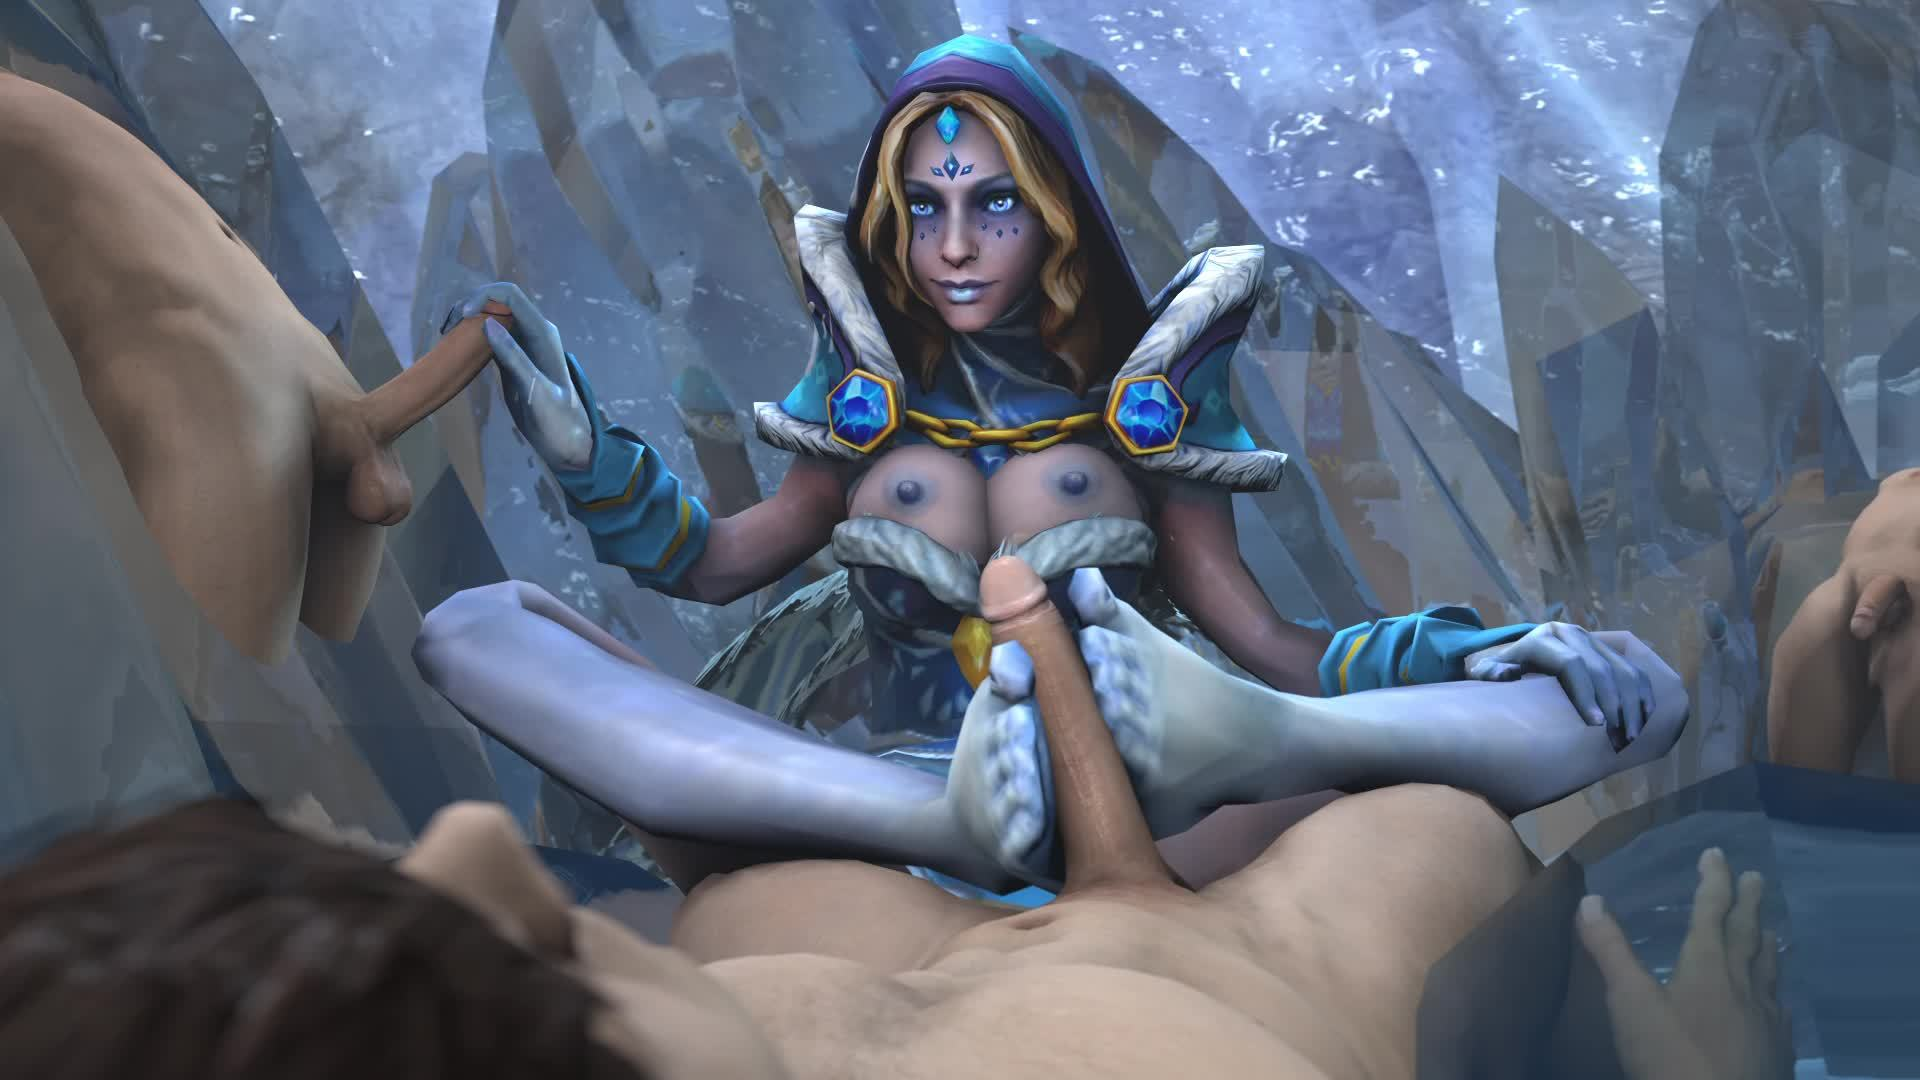 Crystal maiden sex pic anime videos